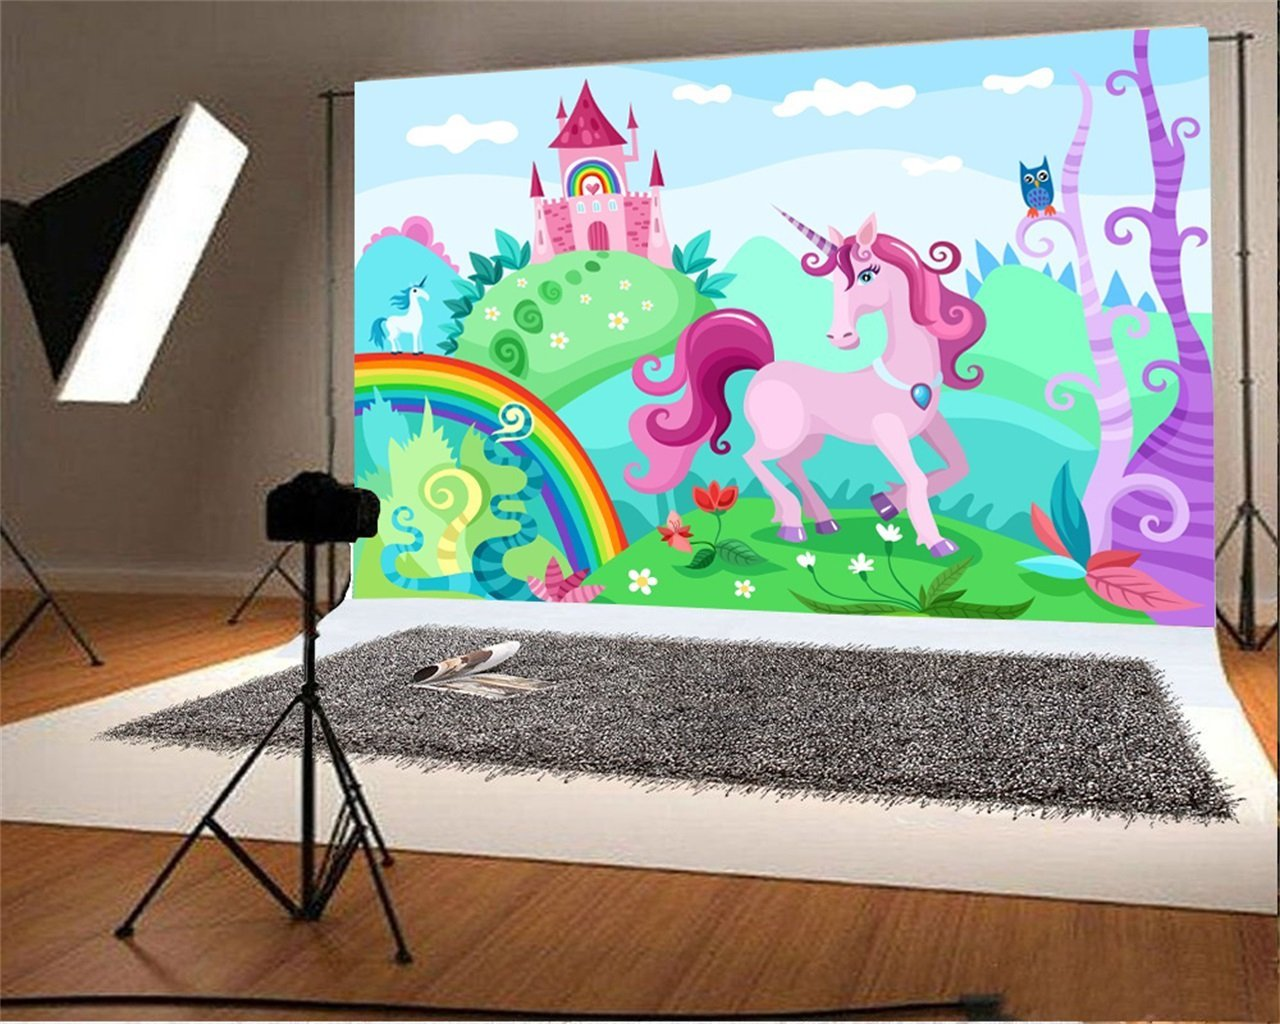 sky white clouds Cartoon Unicorn Forest Castle Rainbow Flower Background Vinyl cloth Computer print children kids backdrops